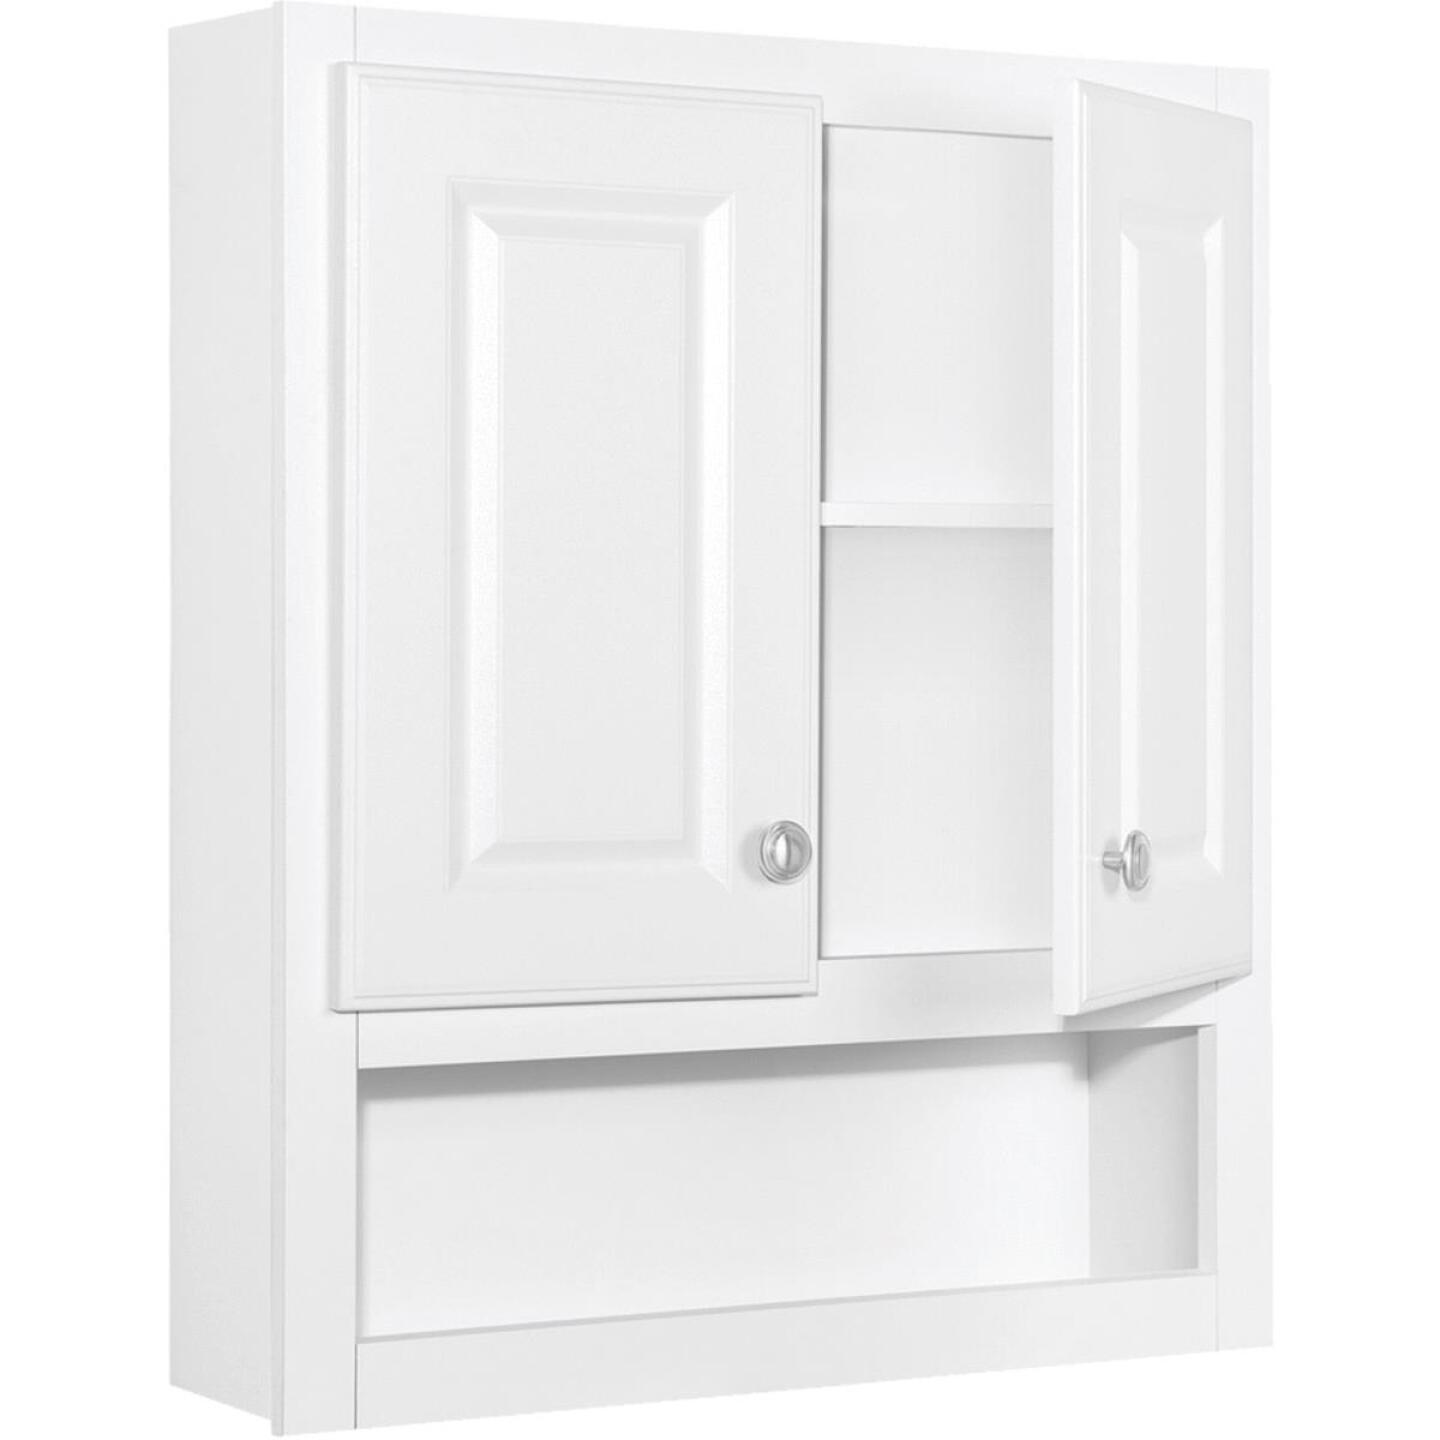 Continental Cabinets Modular Semi-Gloss White Finish 23-1/4 In. W. x 28 In. H. x 7-1/4 In. D. Wood Wall Bath Cabinet Image 2